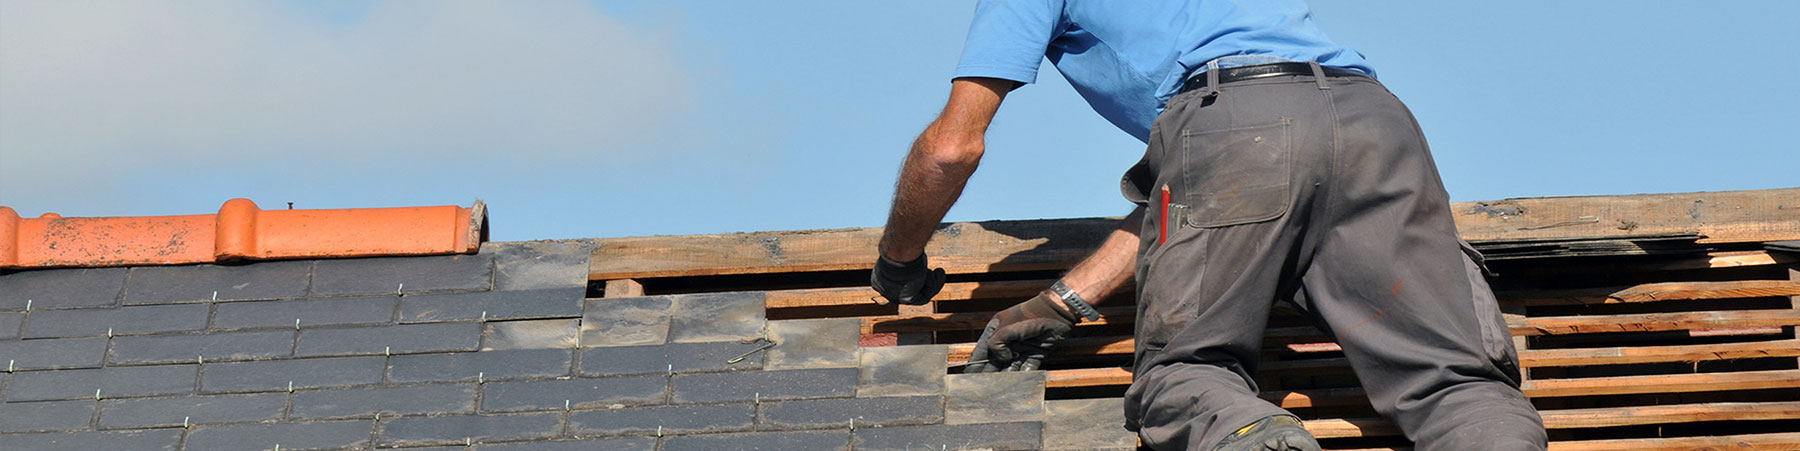 Welcome To Ryan Roofing. Roofing That Stands The Test Of Time.